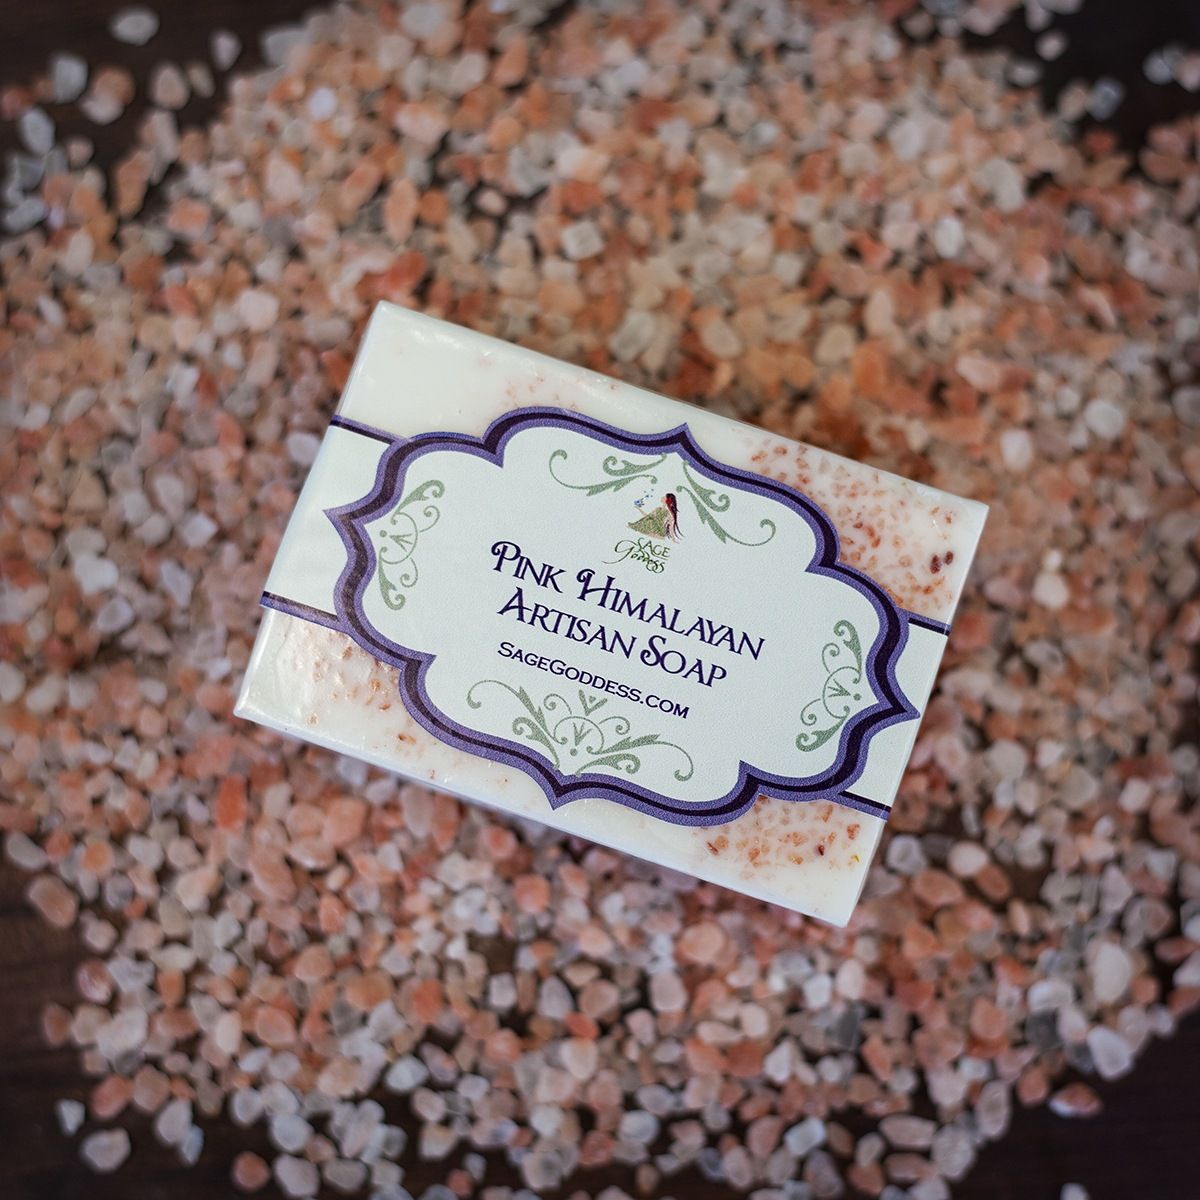 Pink Himalayan Salt Artisan Soap for powerful physical and